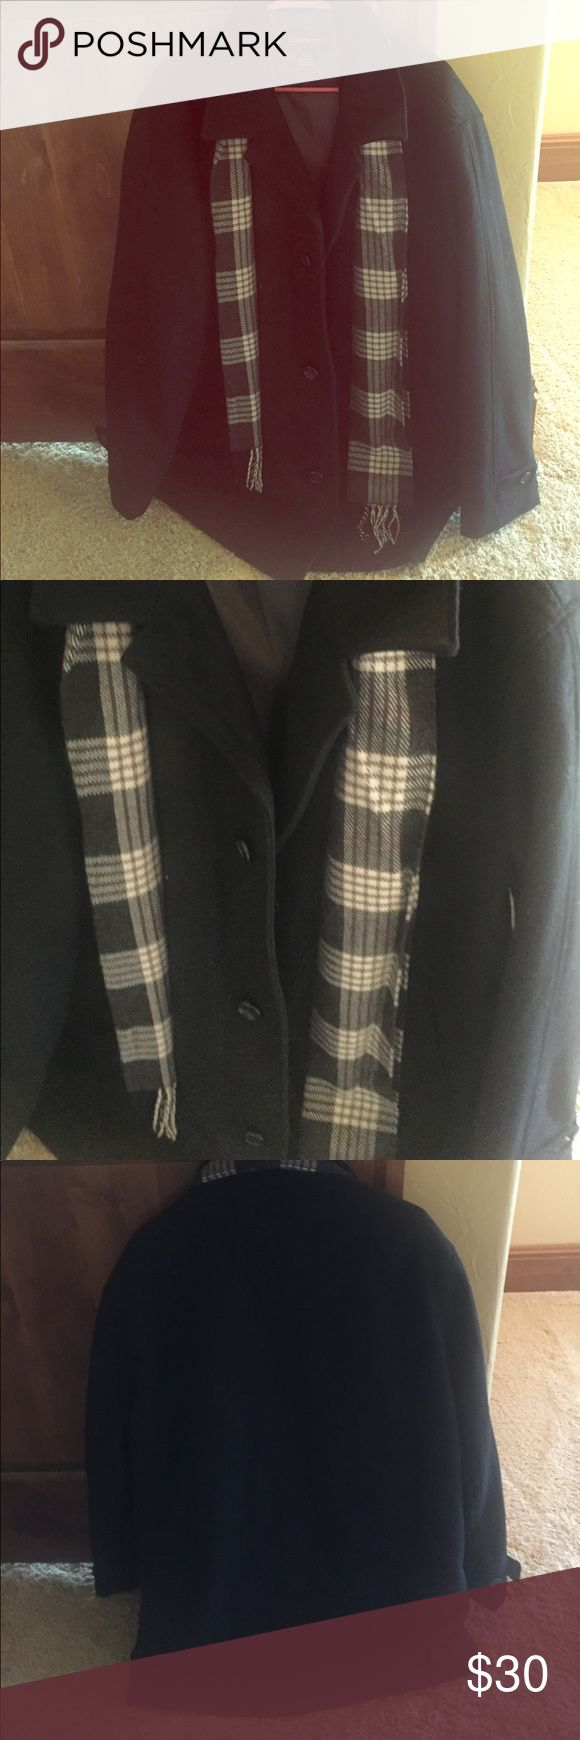 Men's Peacoat Black pea coat with collar and removable attached gray plaid scarf London Fog Jackets & Coats Pea Coats